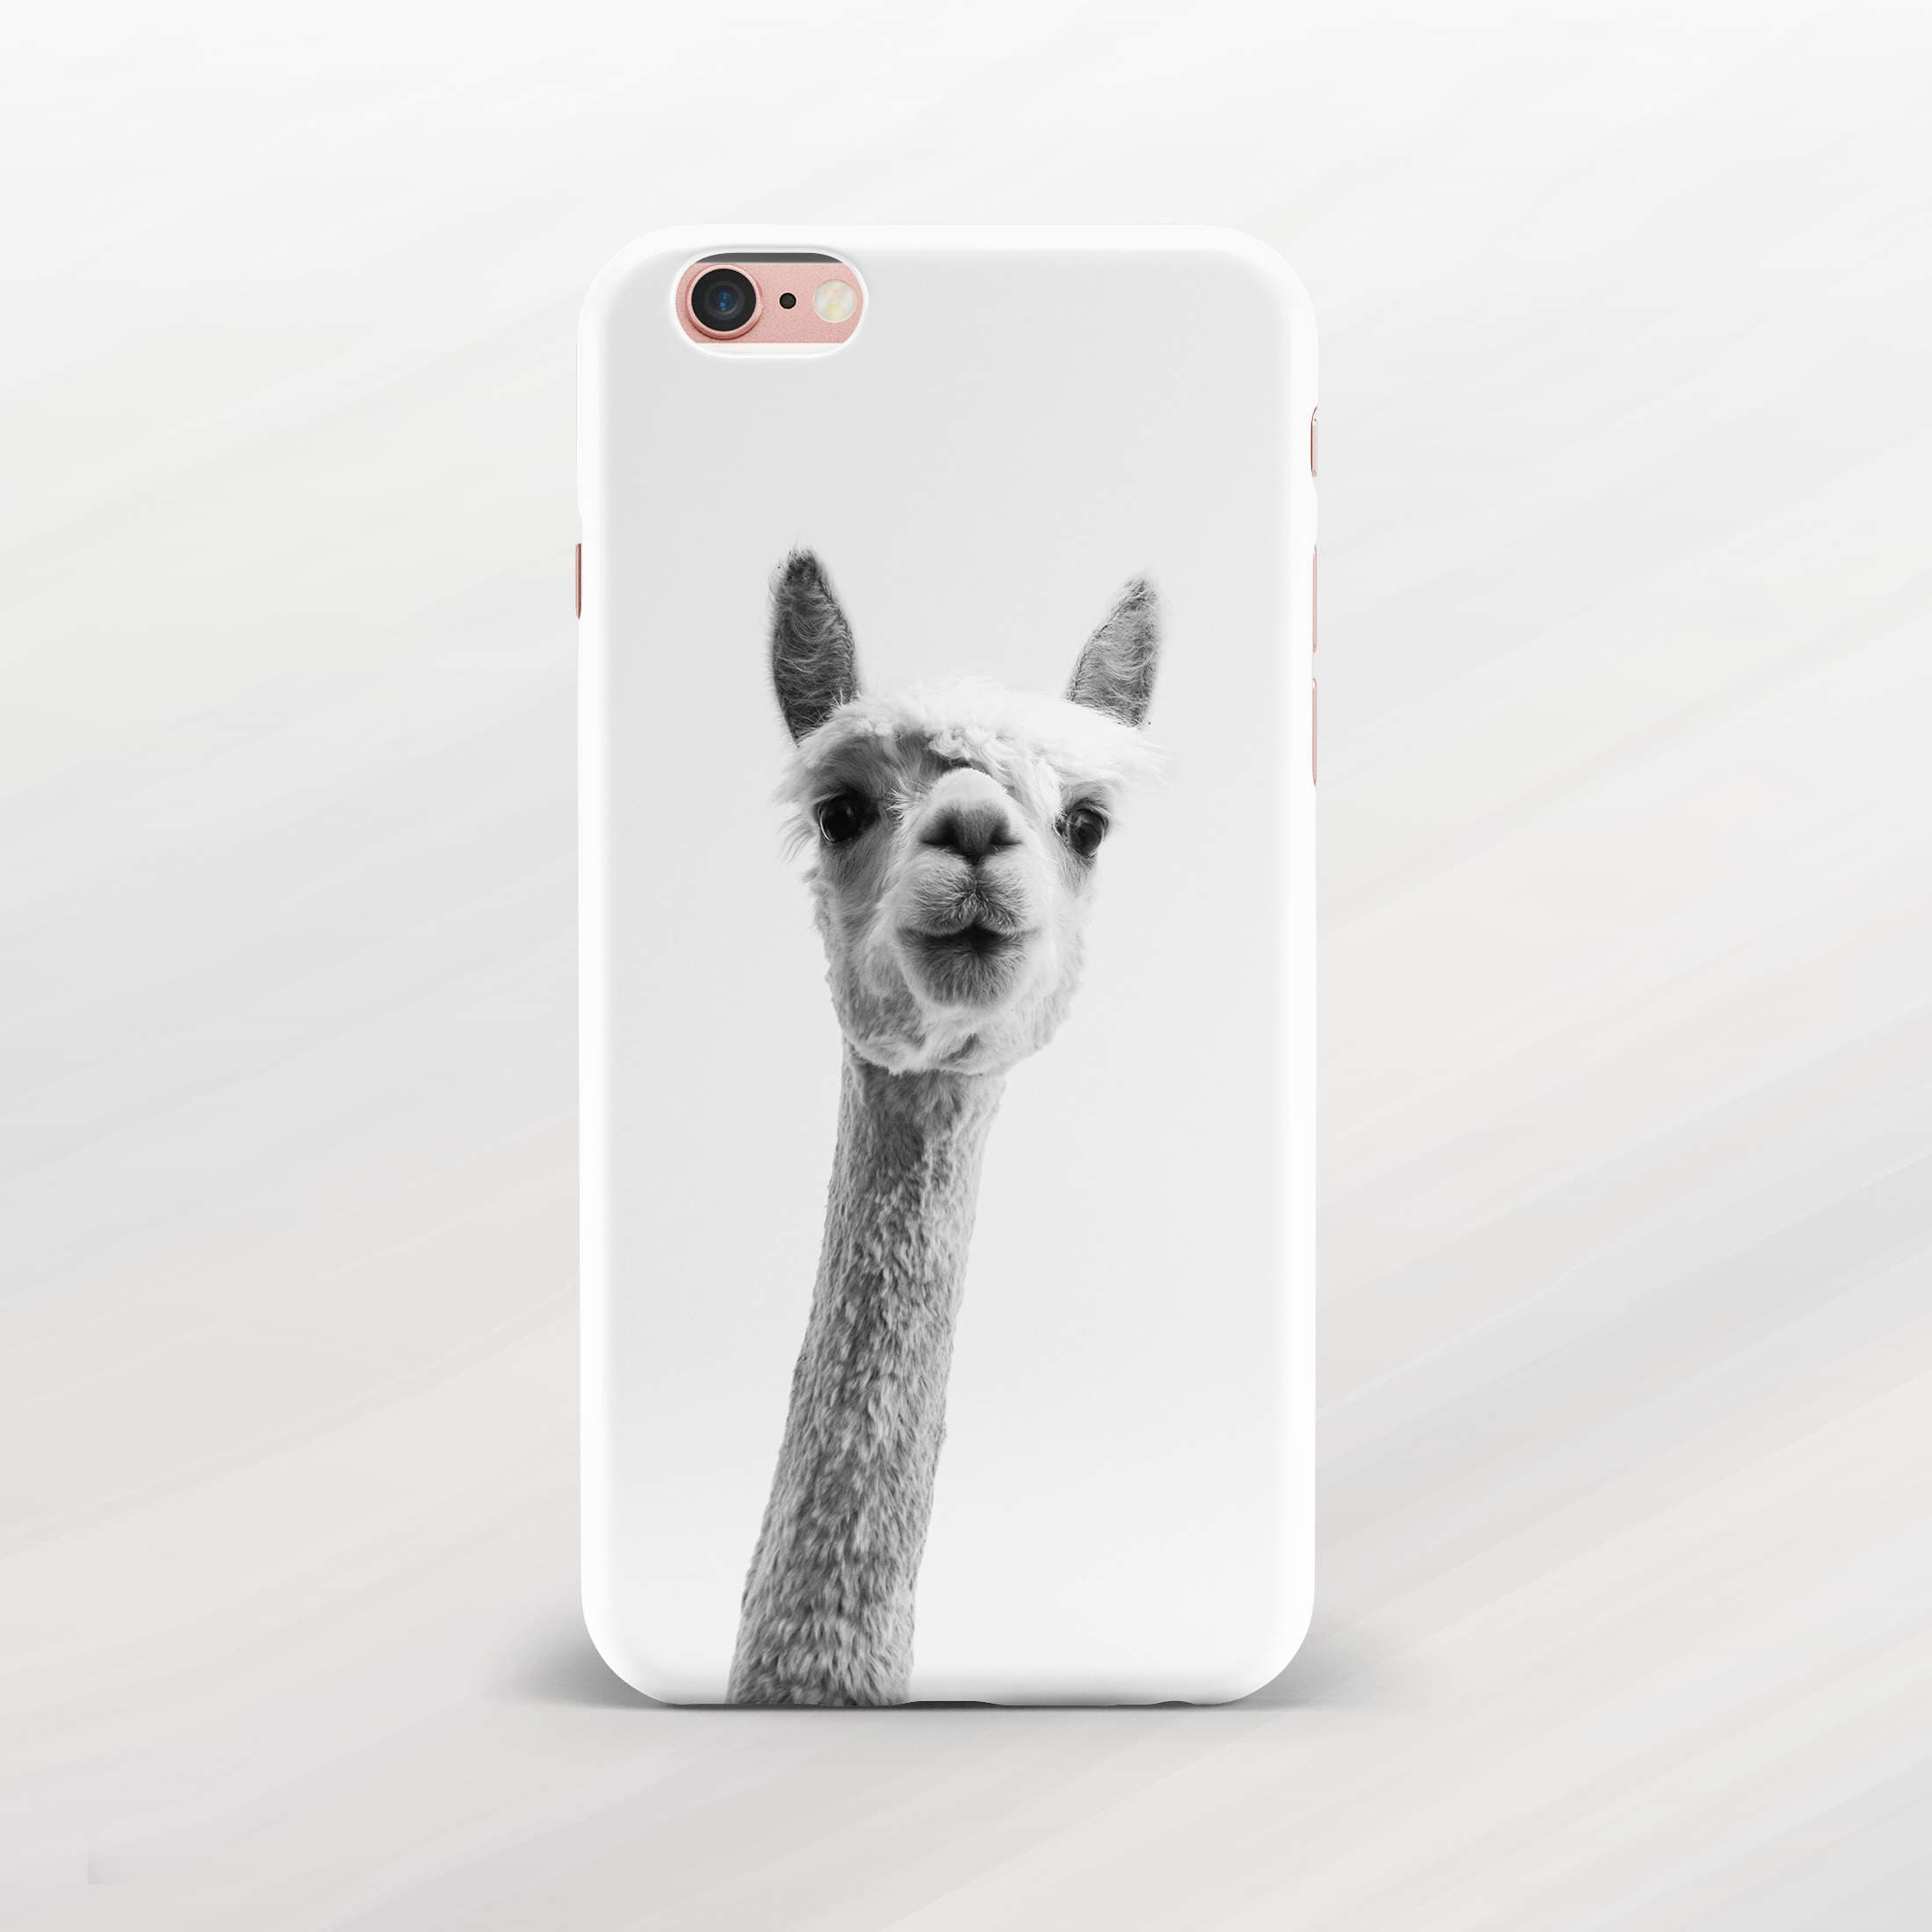 animal case iphone 7 plus